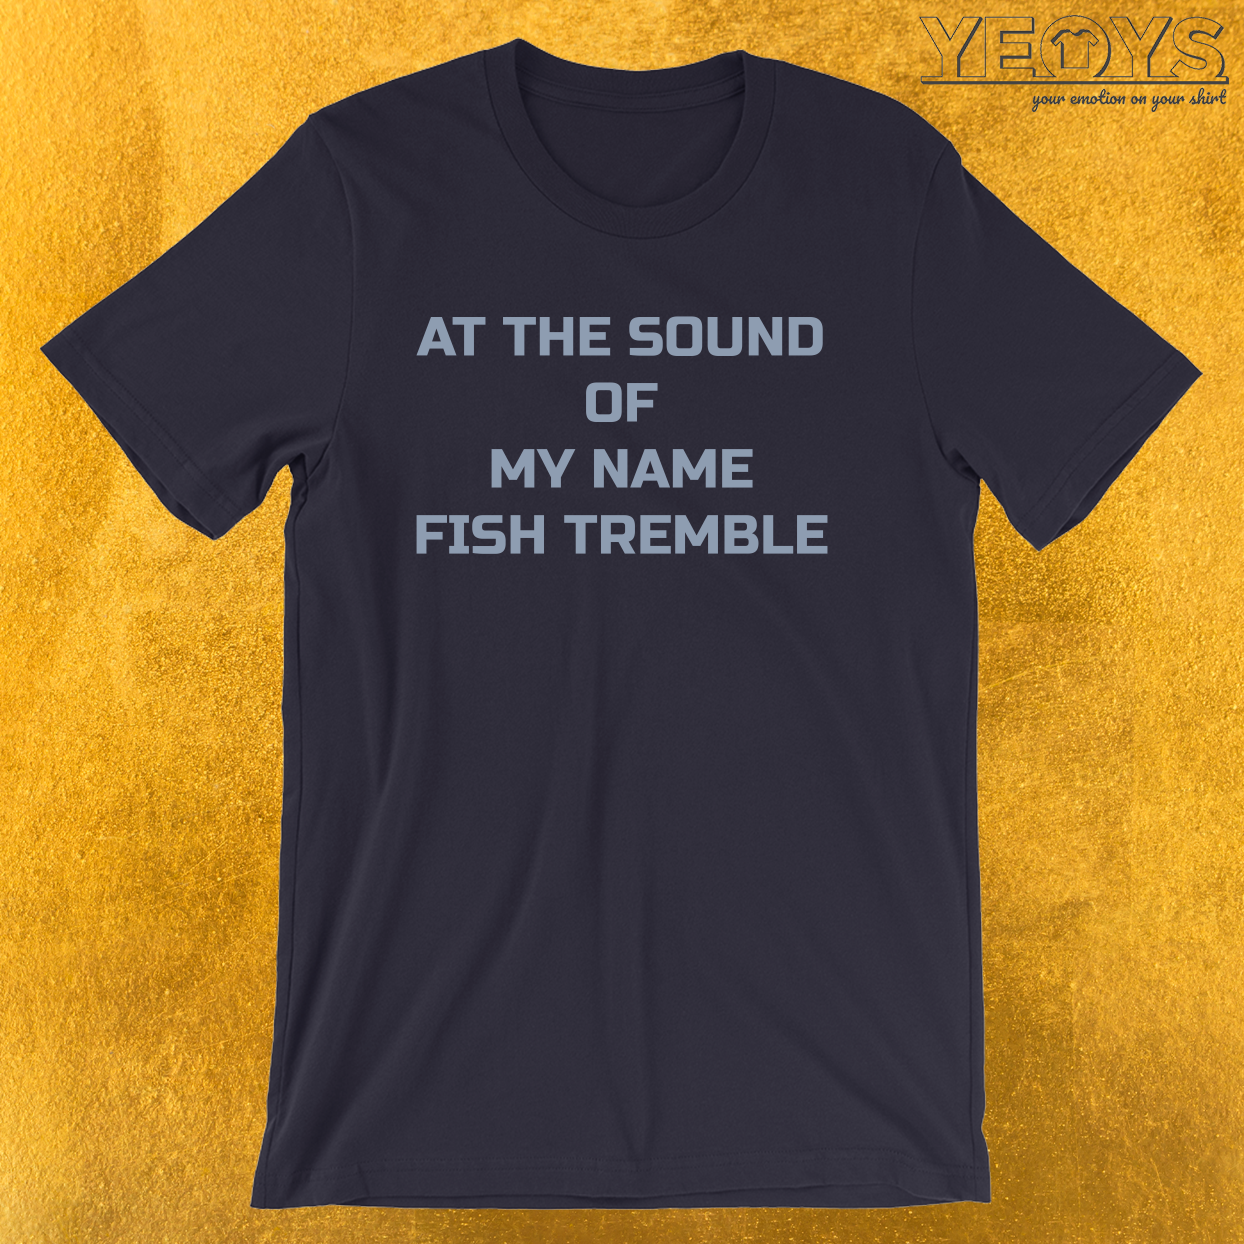 At The Sound Of My Name Fish Tremble – Funny Fishing Tee